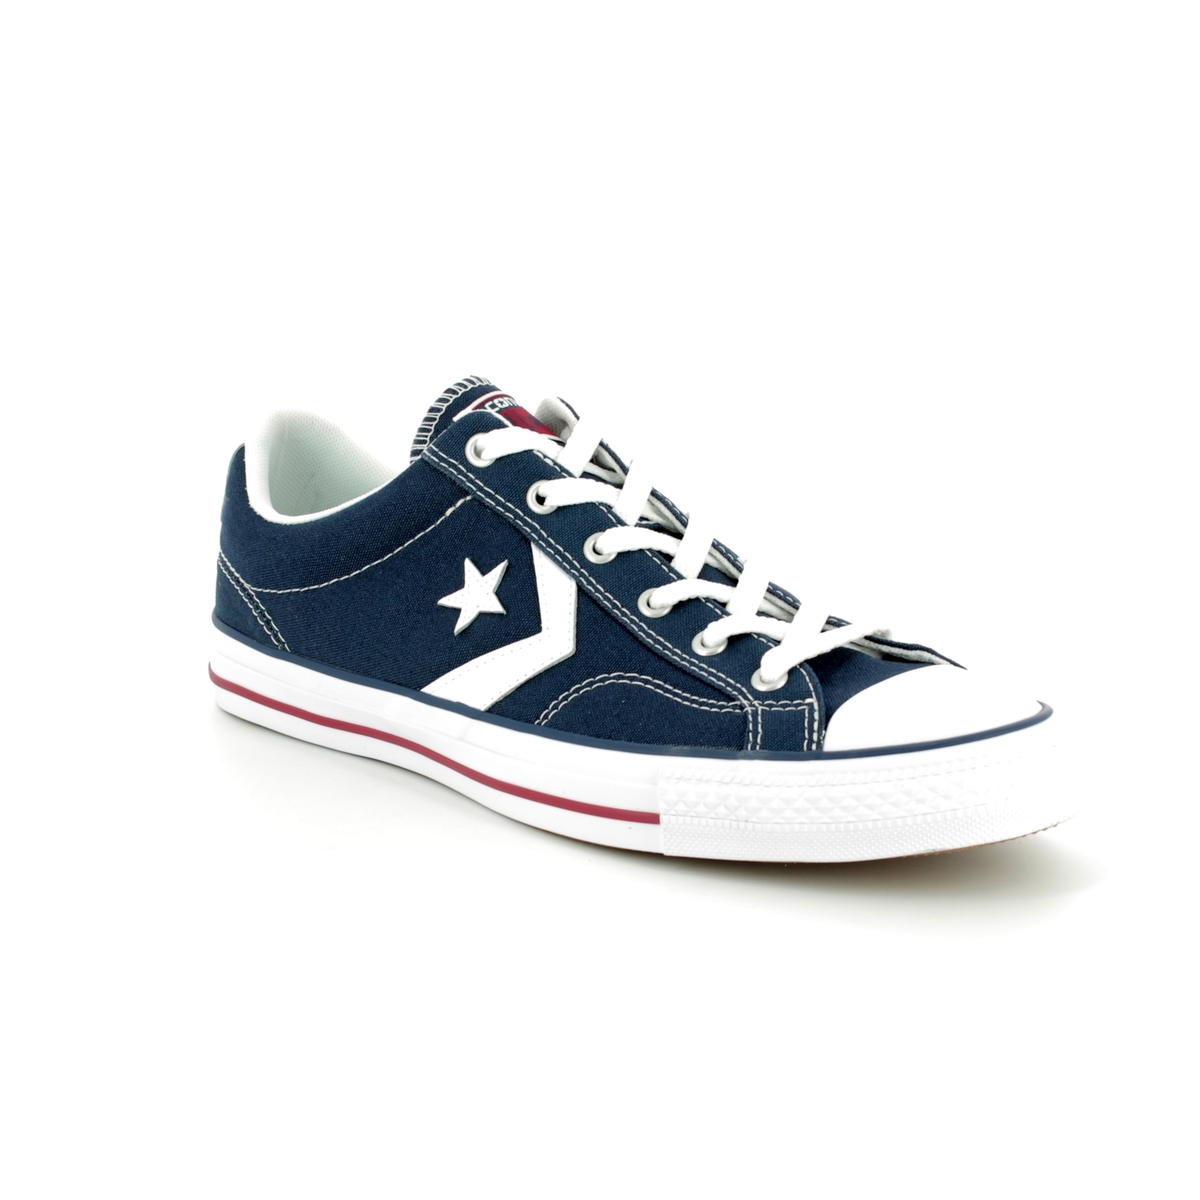 32d5baa2bbeaa6 Converse Trainers - Navy - 144150C STAR PLAYER OX